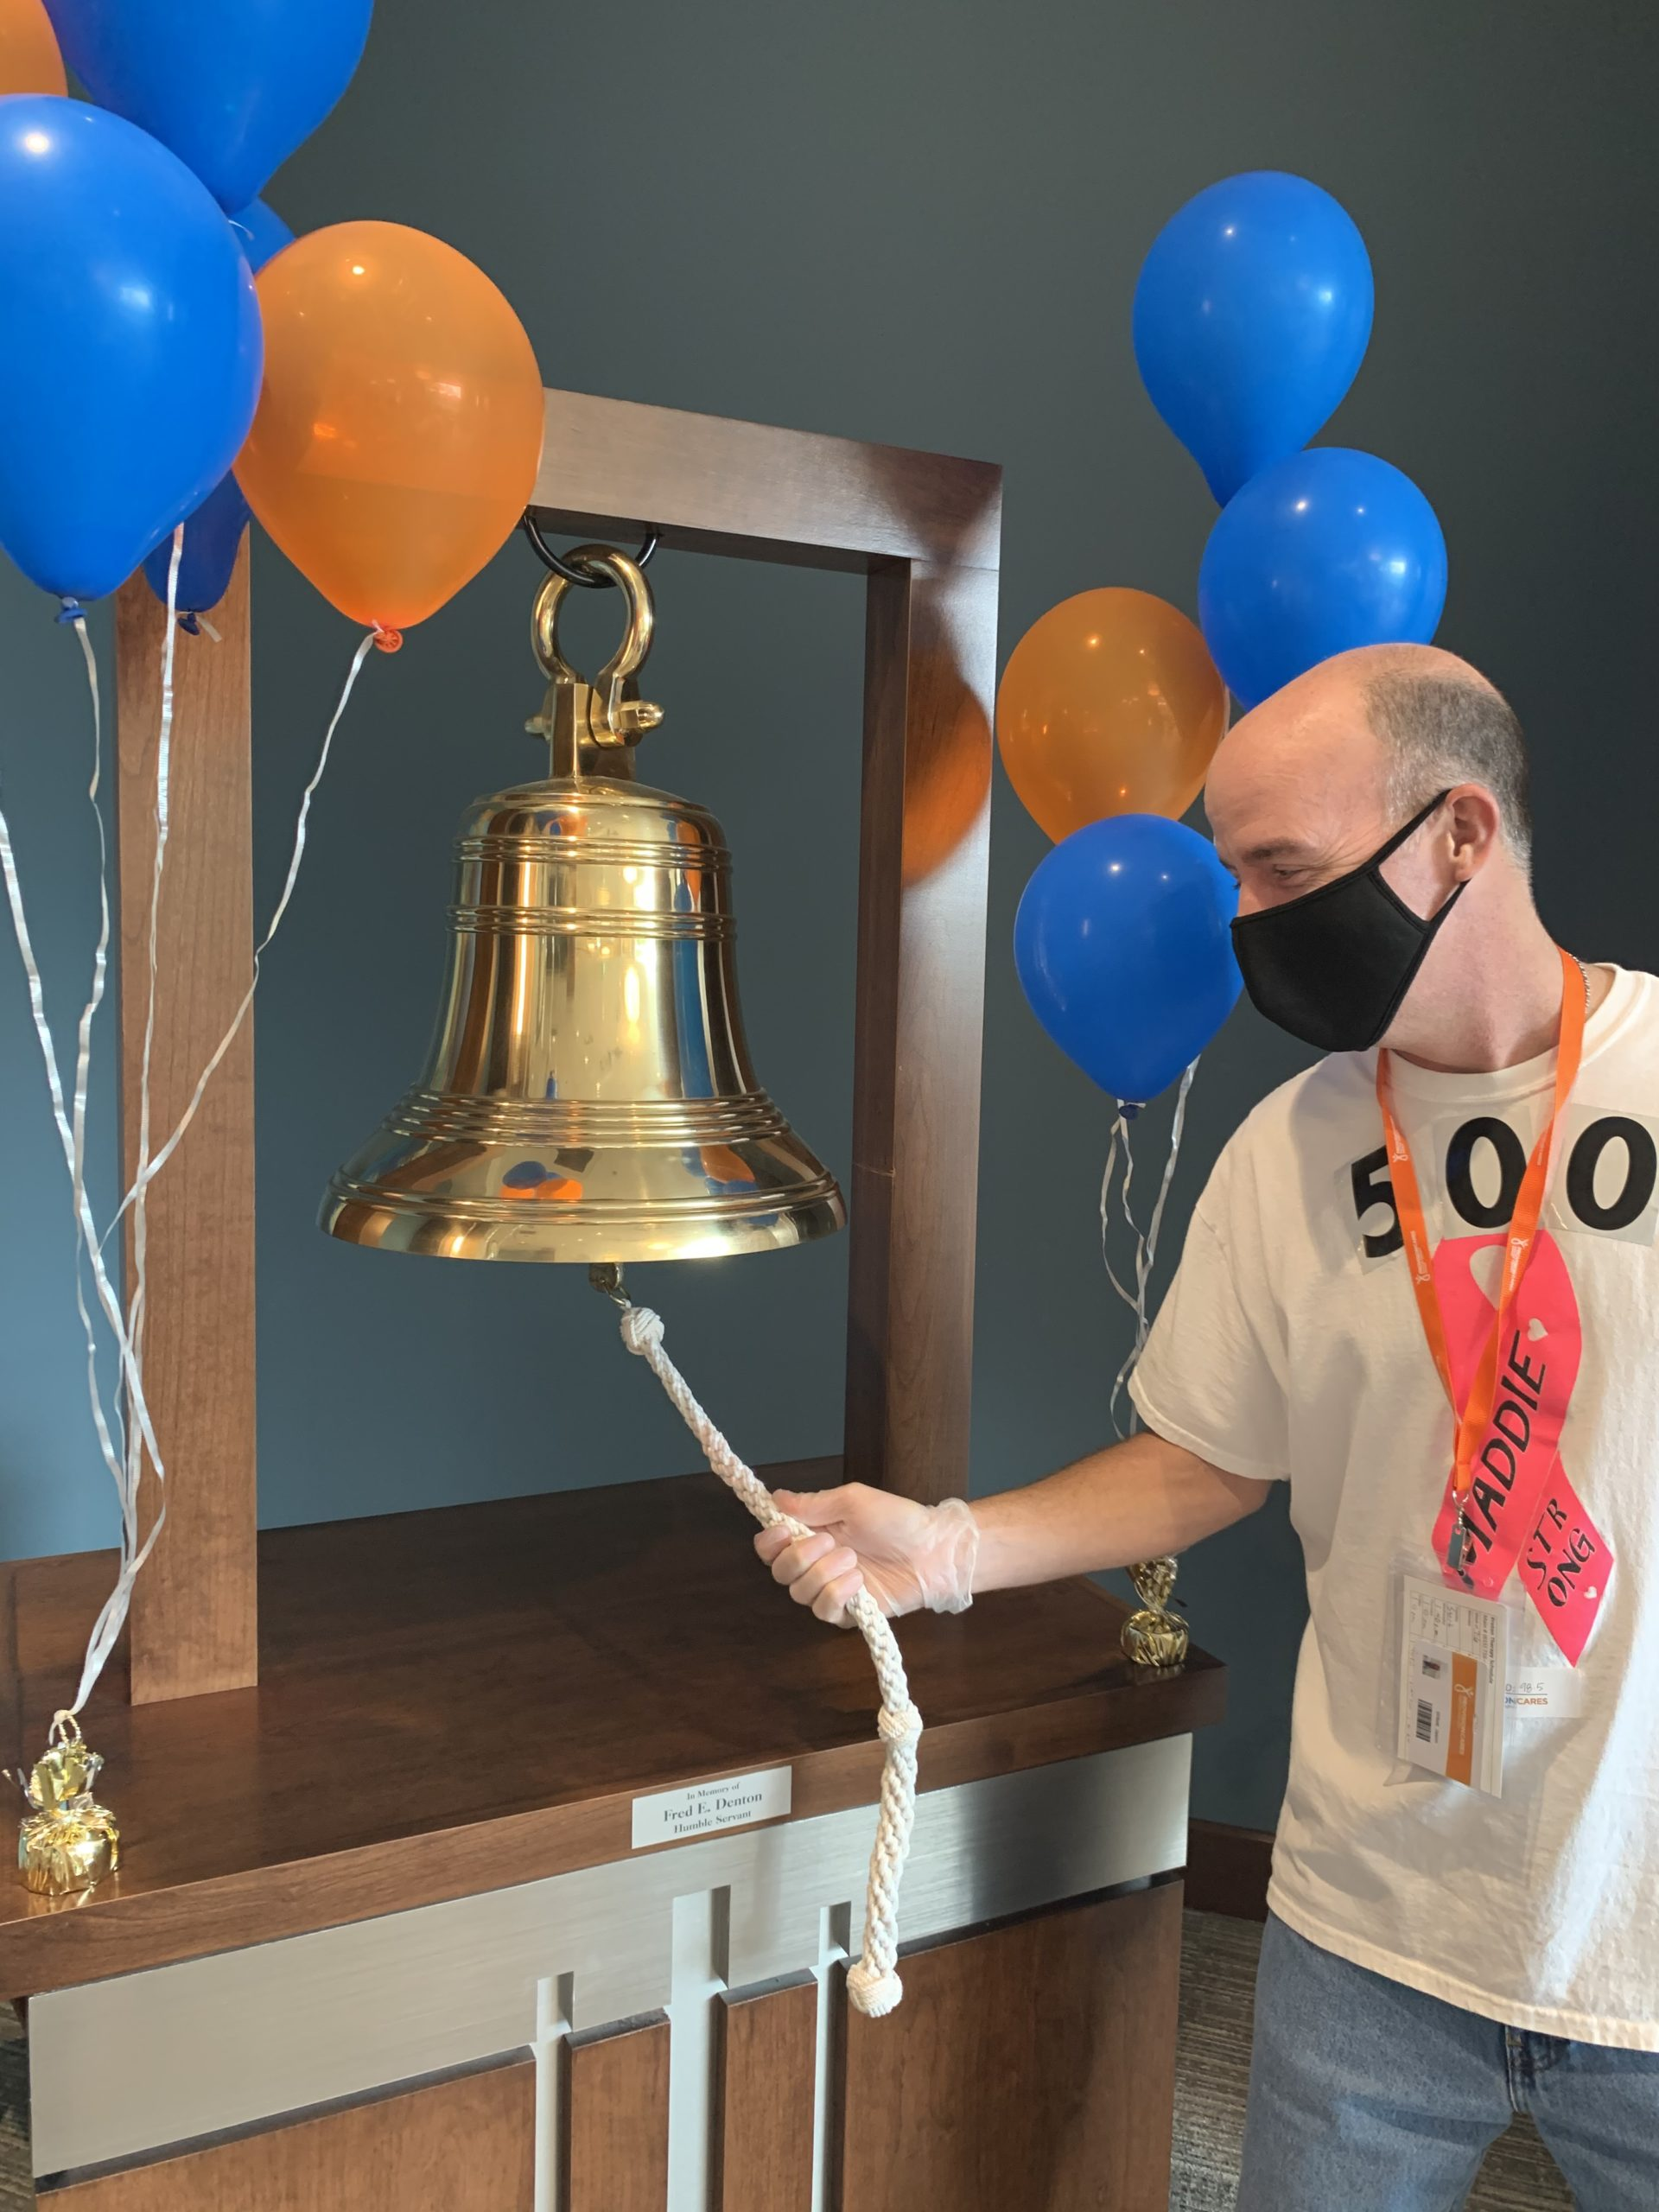 Jason Willet stands at the victory bell after completing proton therapy for tonsil cancer treatment at Provision Nashville